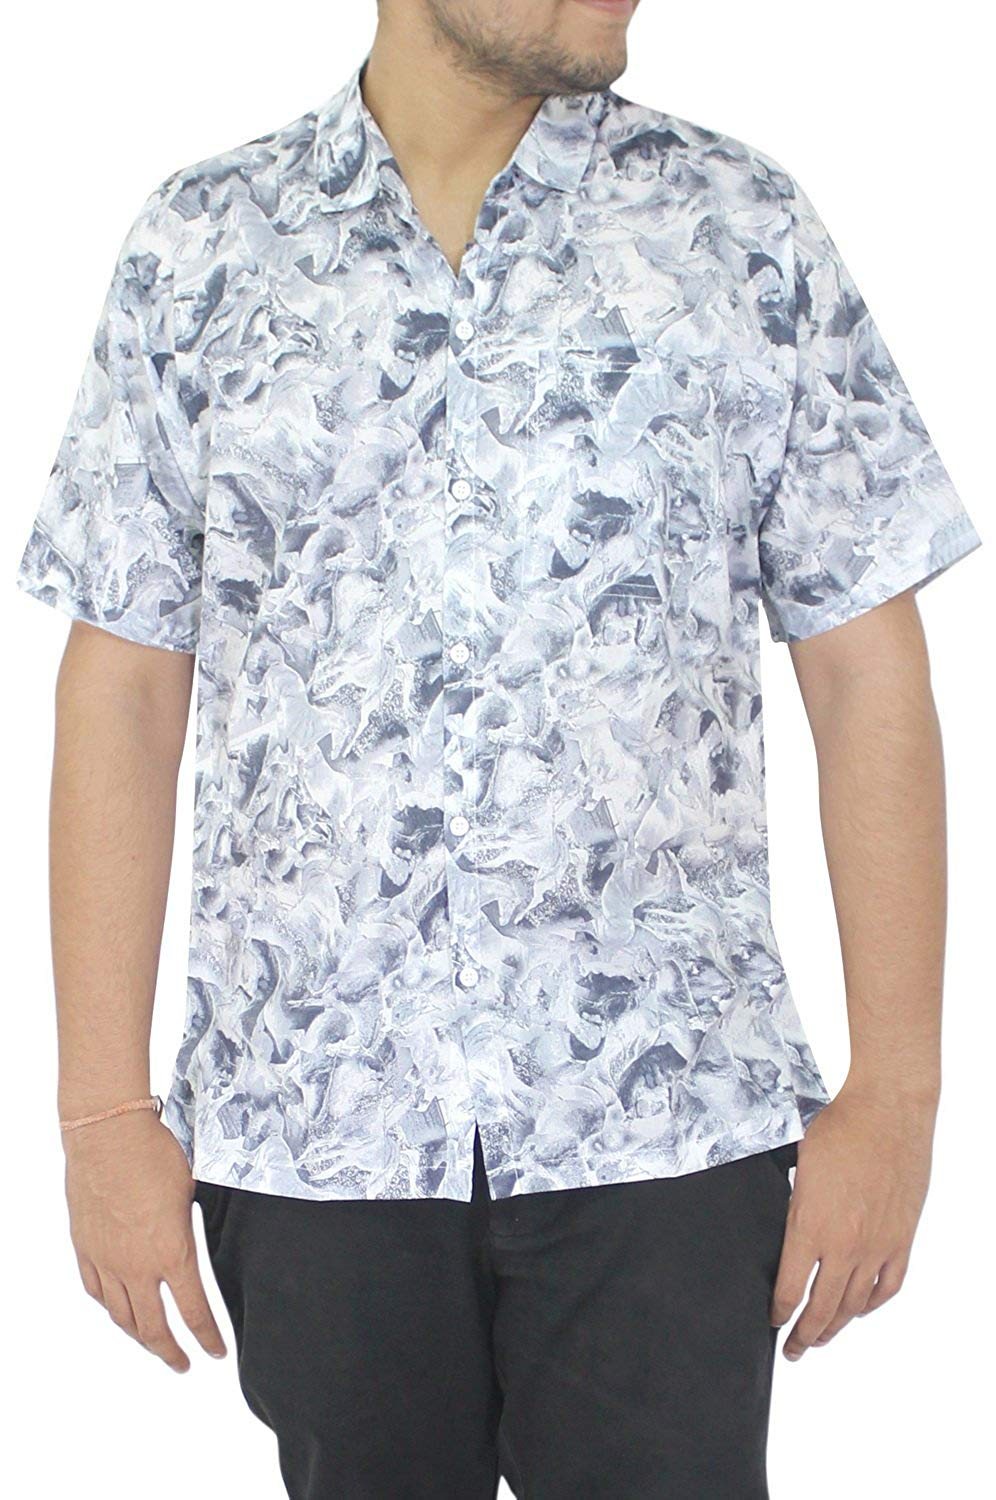 la-leela-mens-aloha-hawaiian-shirt-short-sleeve-button-down-casual-beach-party-9